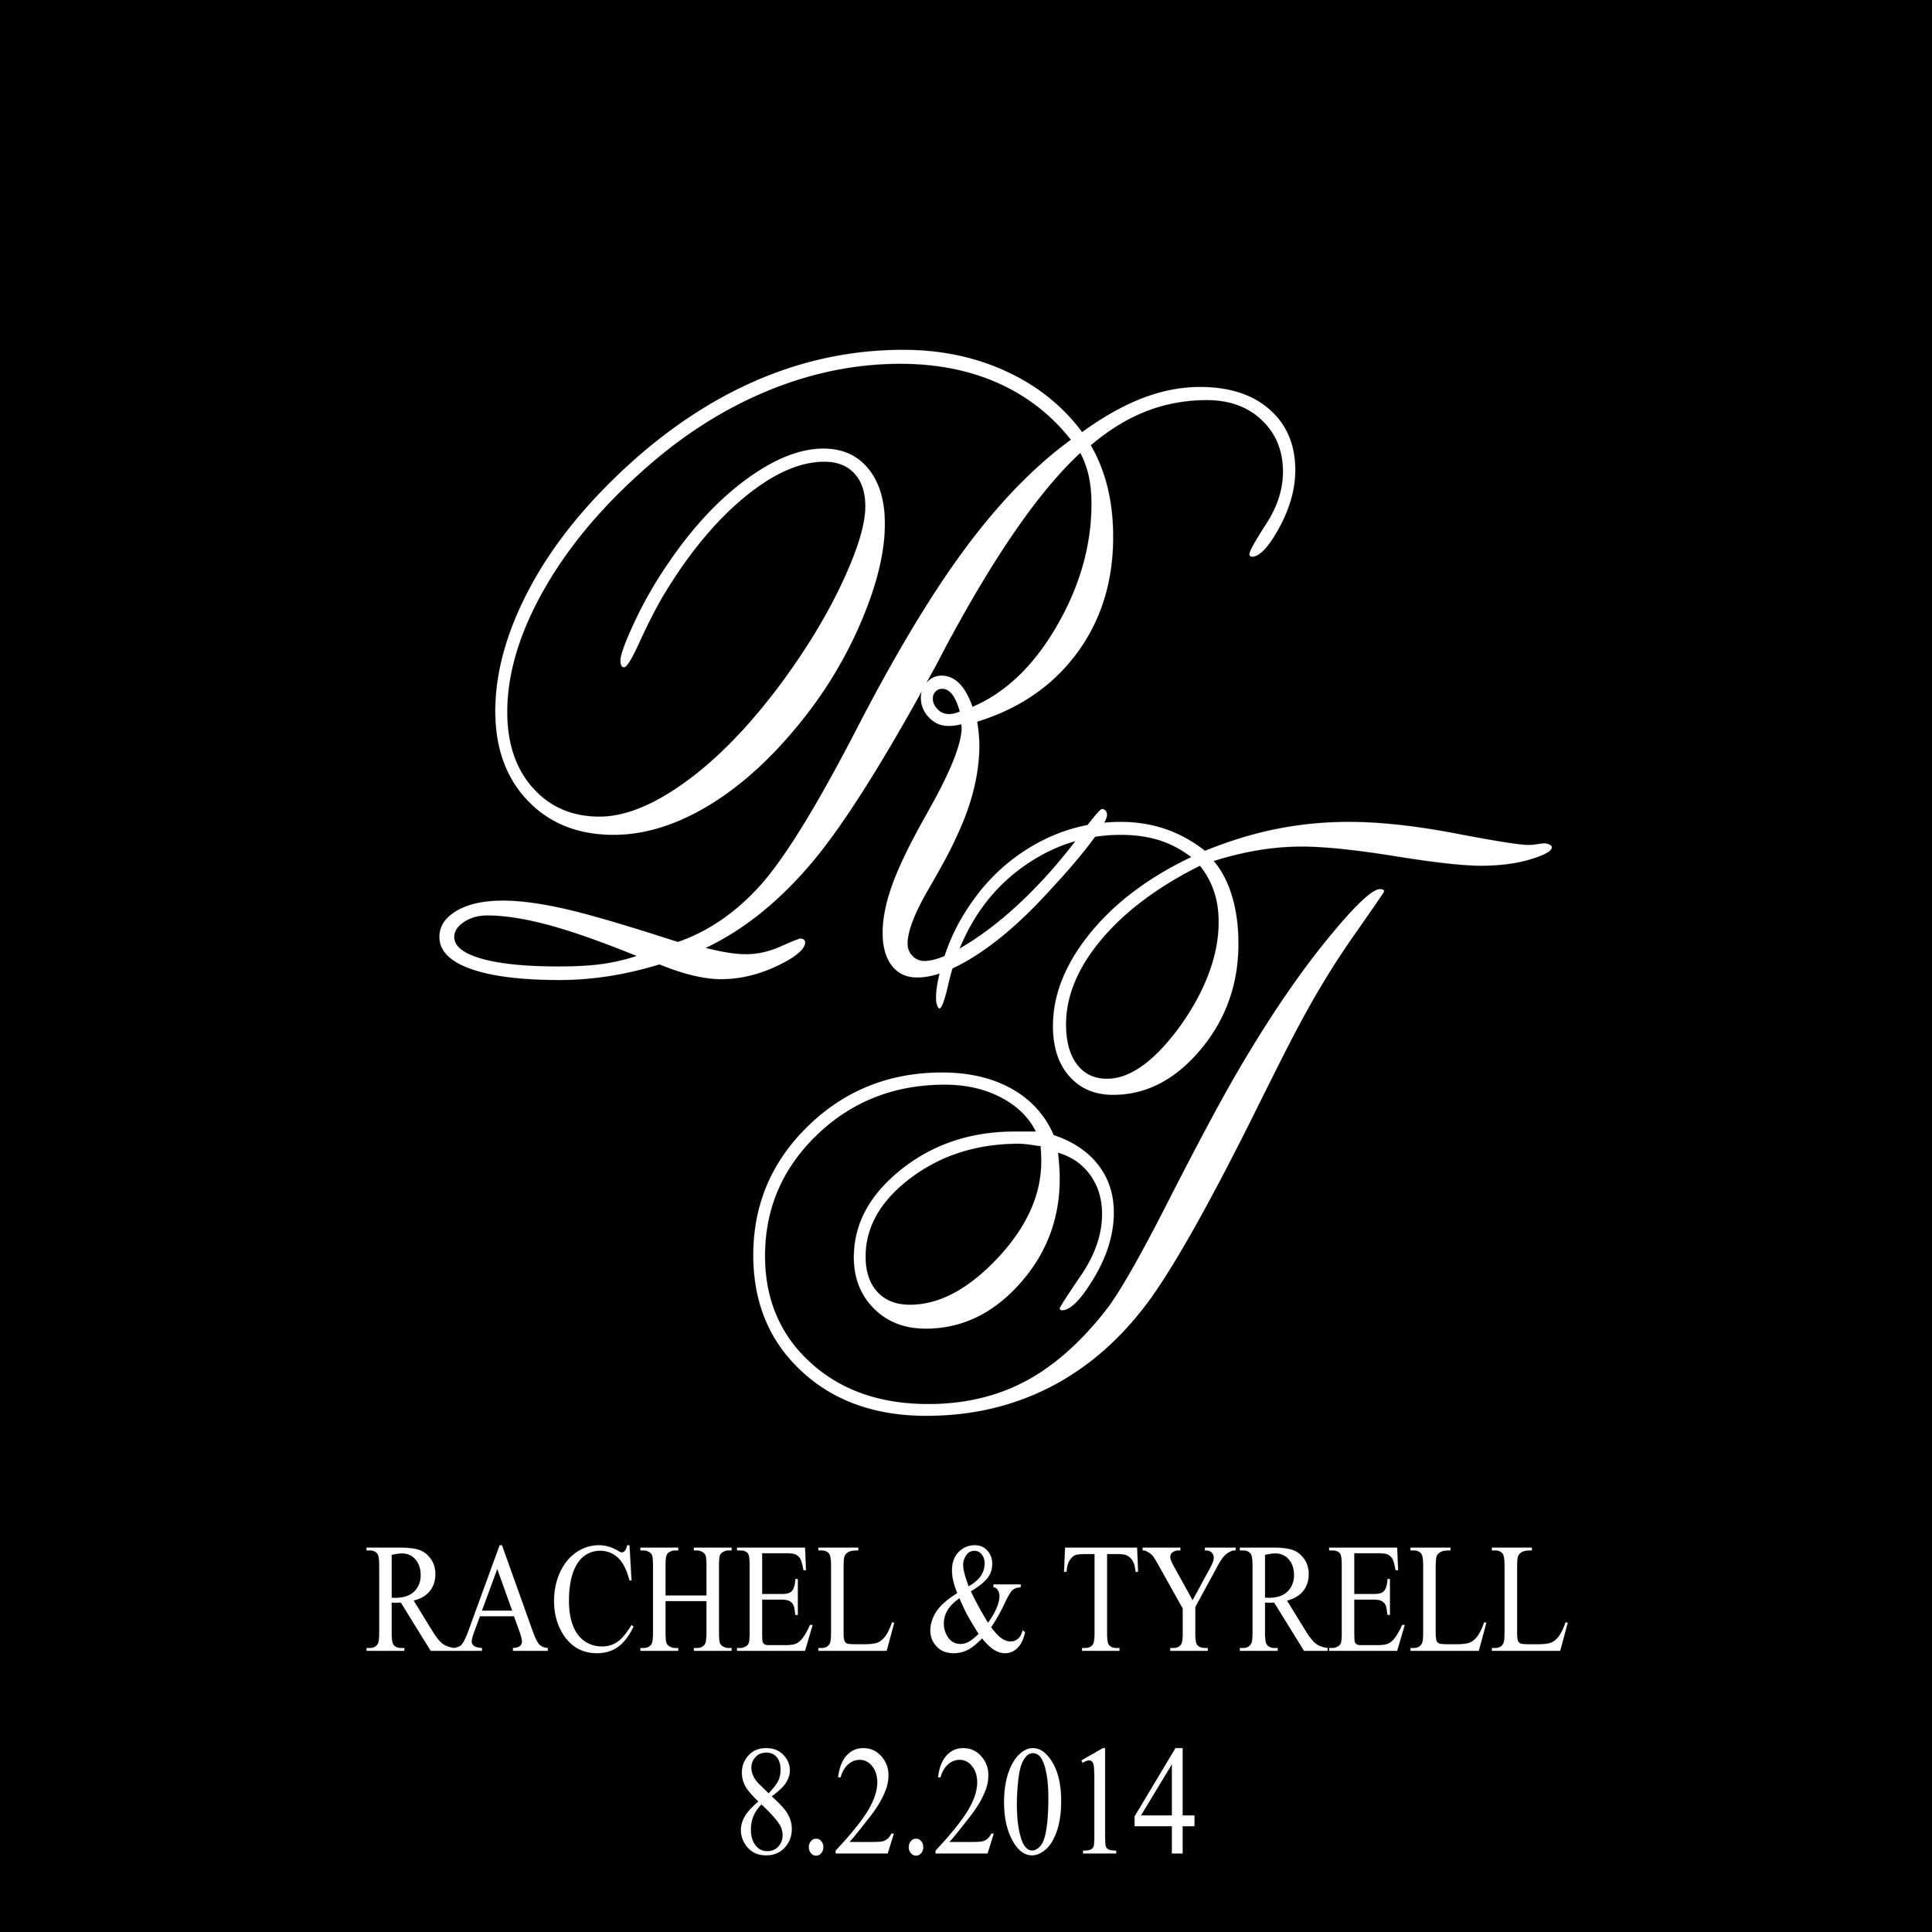 Rachel and Tyrell Wedding Gobo 2014.jpg